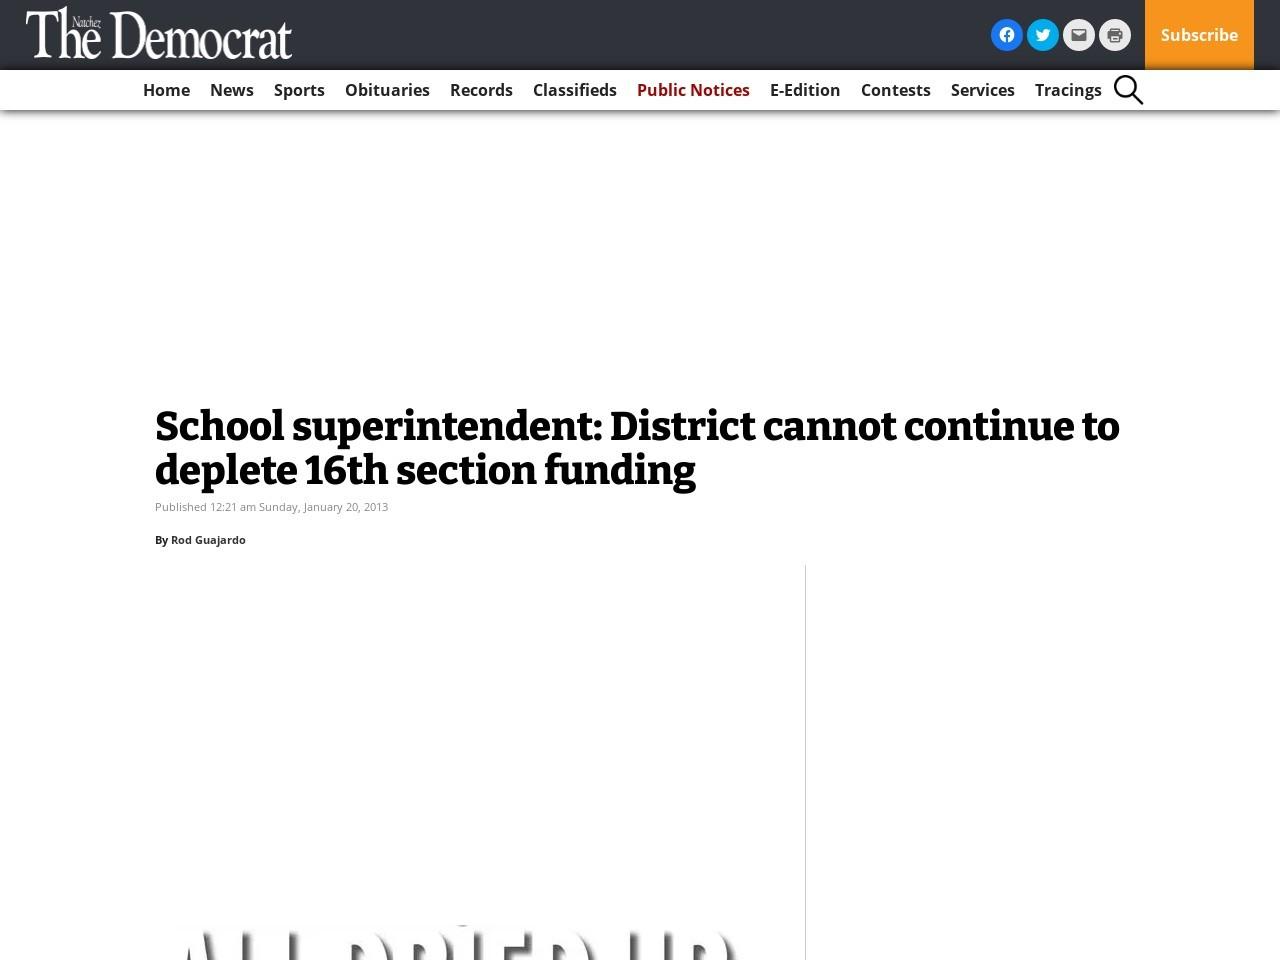 School superintendent: District cannot continue to deplete 16th section funding